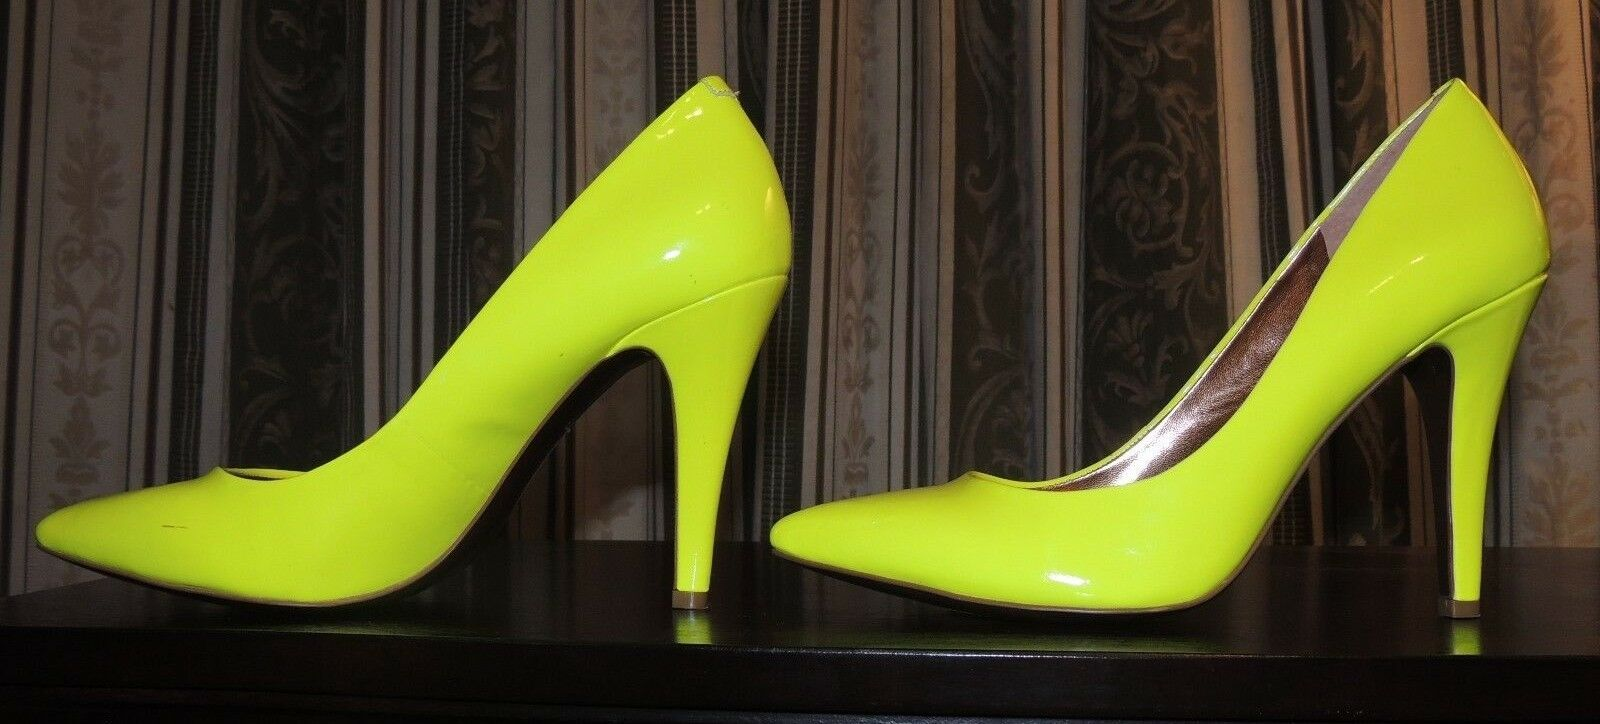 BCBverdeeration  Patent Leather Pump Cielo - Neon giallo, Dimensione 7.5M  vendite online